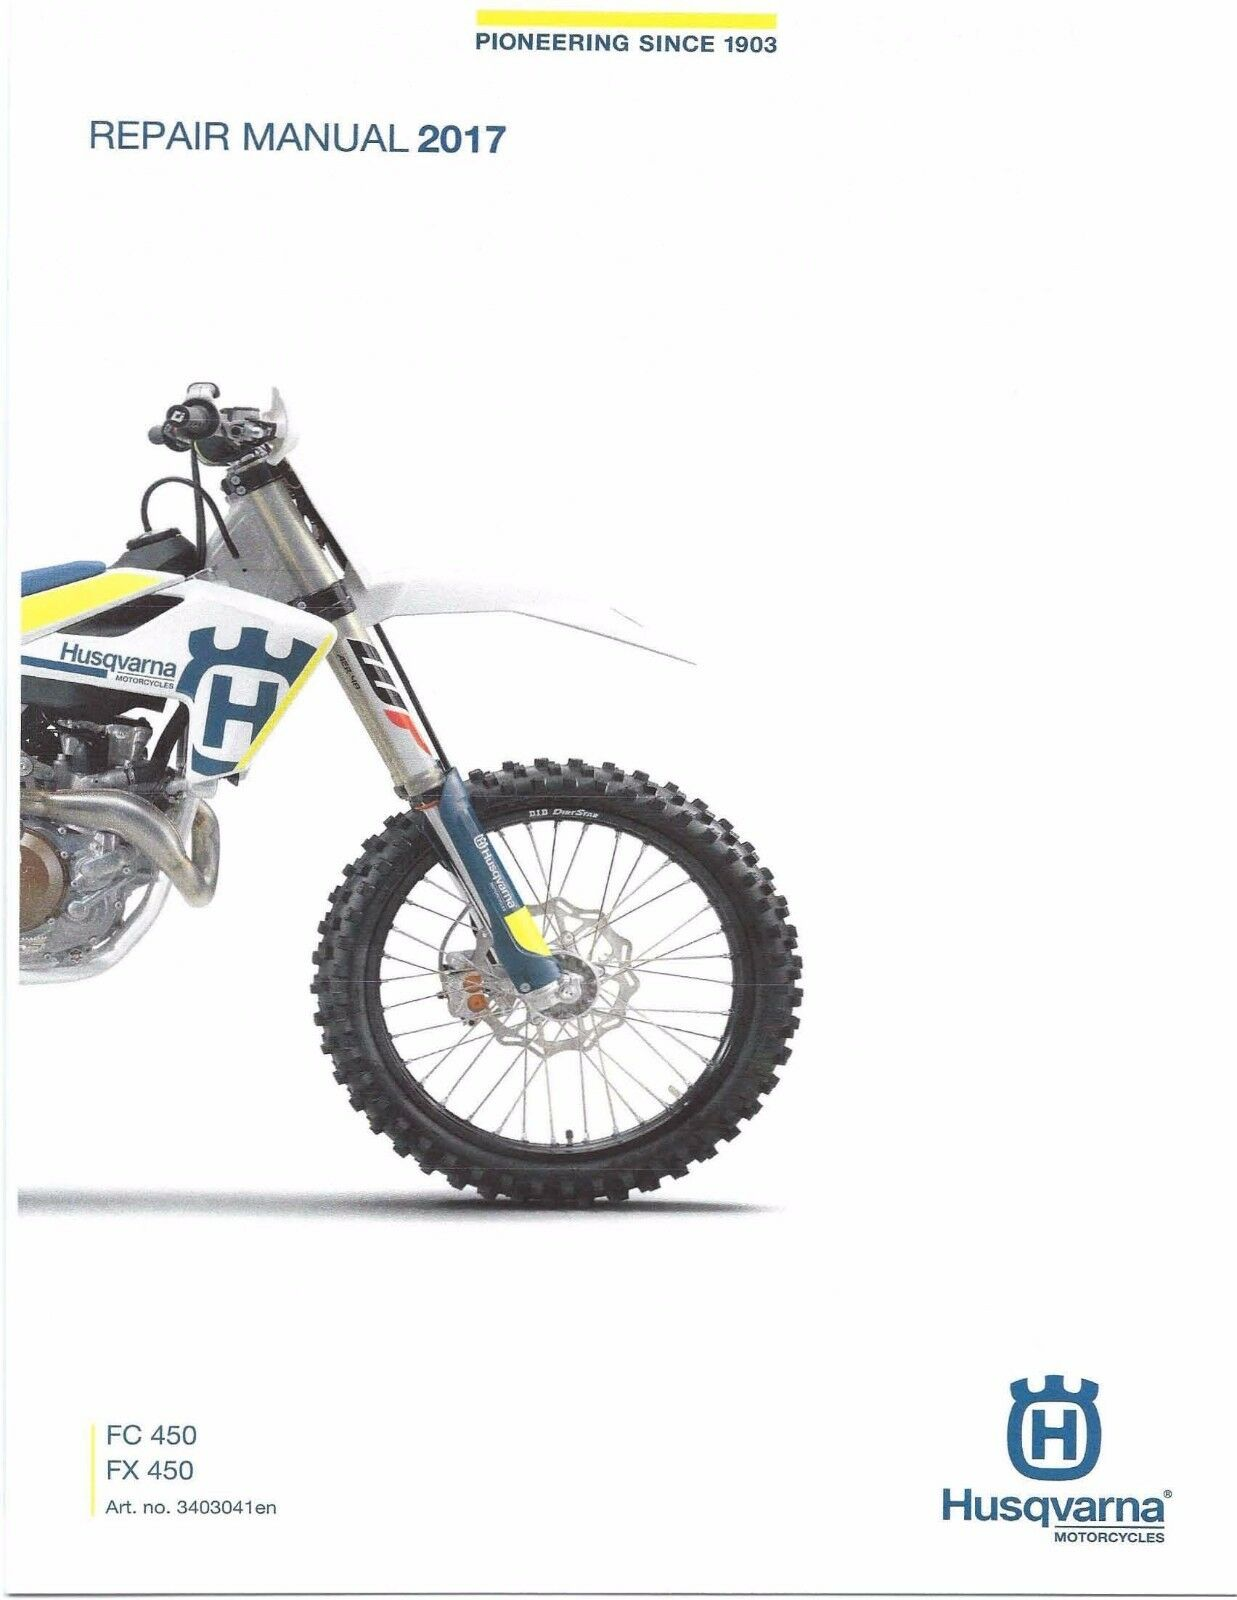 Husqvarna workshop service manual 2017 FC 450 & FX 450 1 of 12 ...